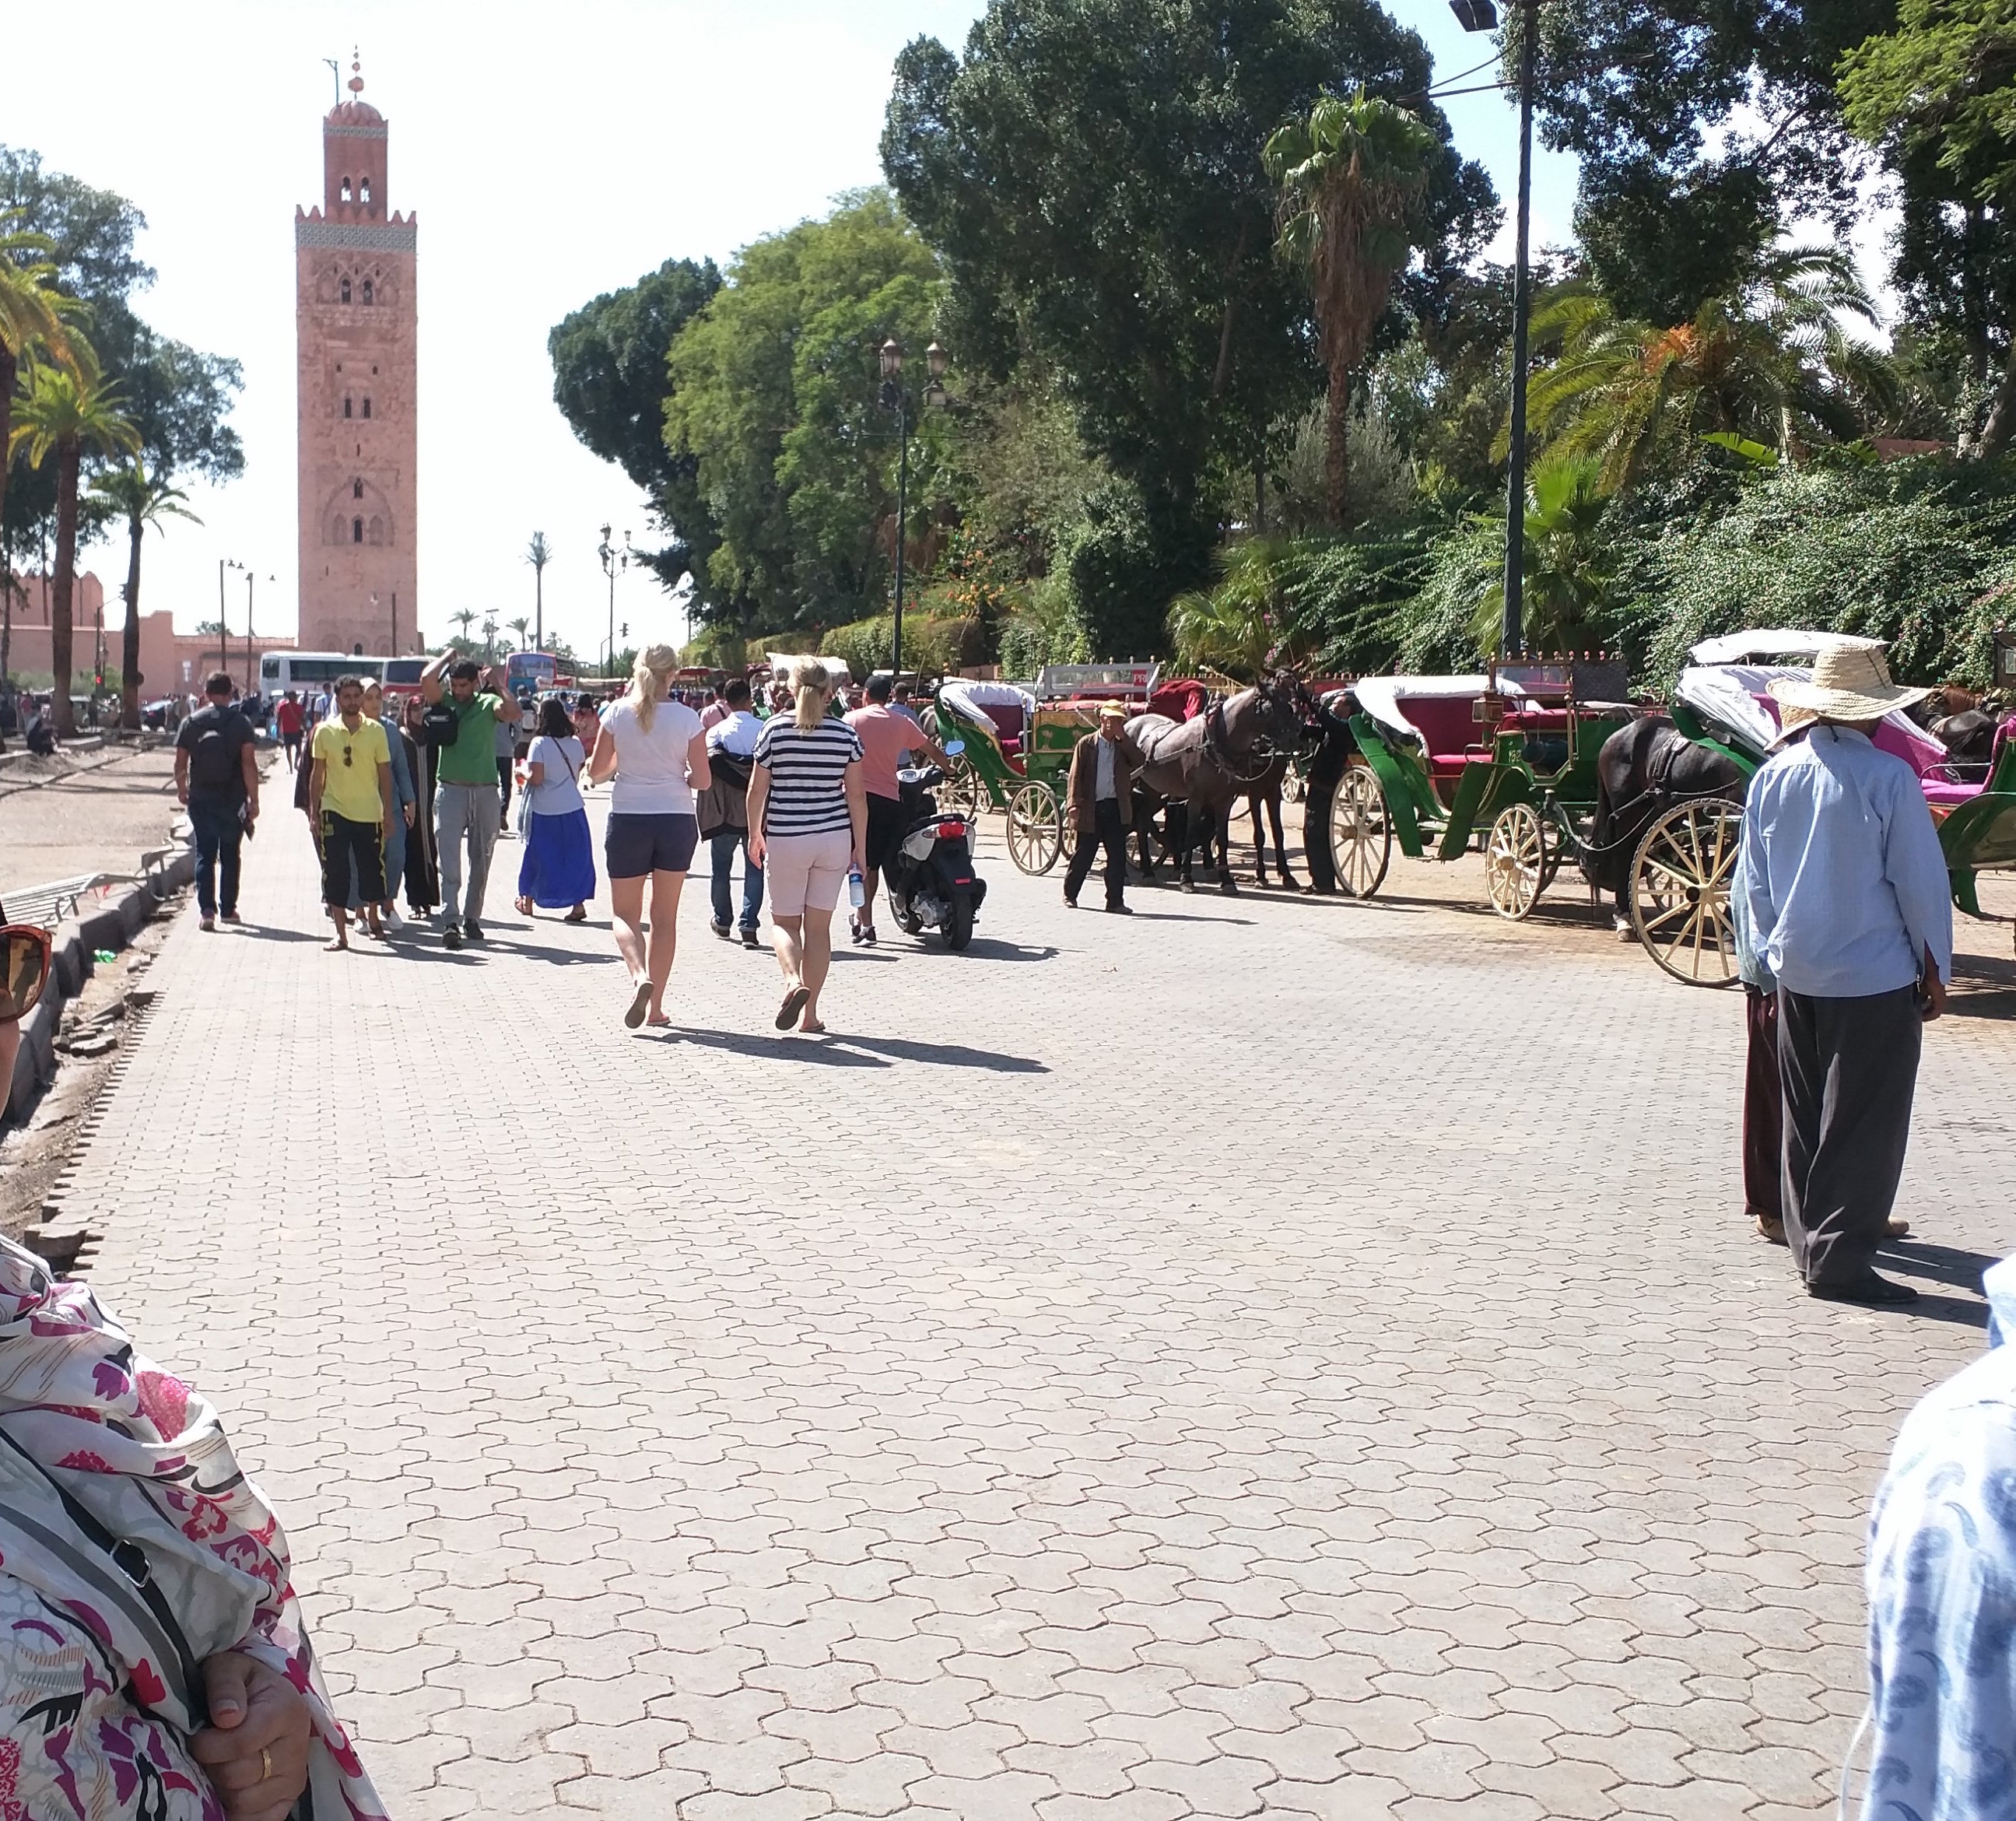 At Square de Foucauld, which sits inbetween Koutoubia and Djemaa El-Fna.